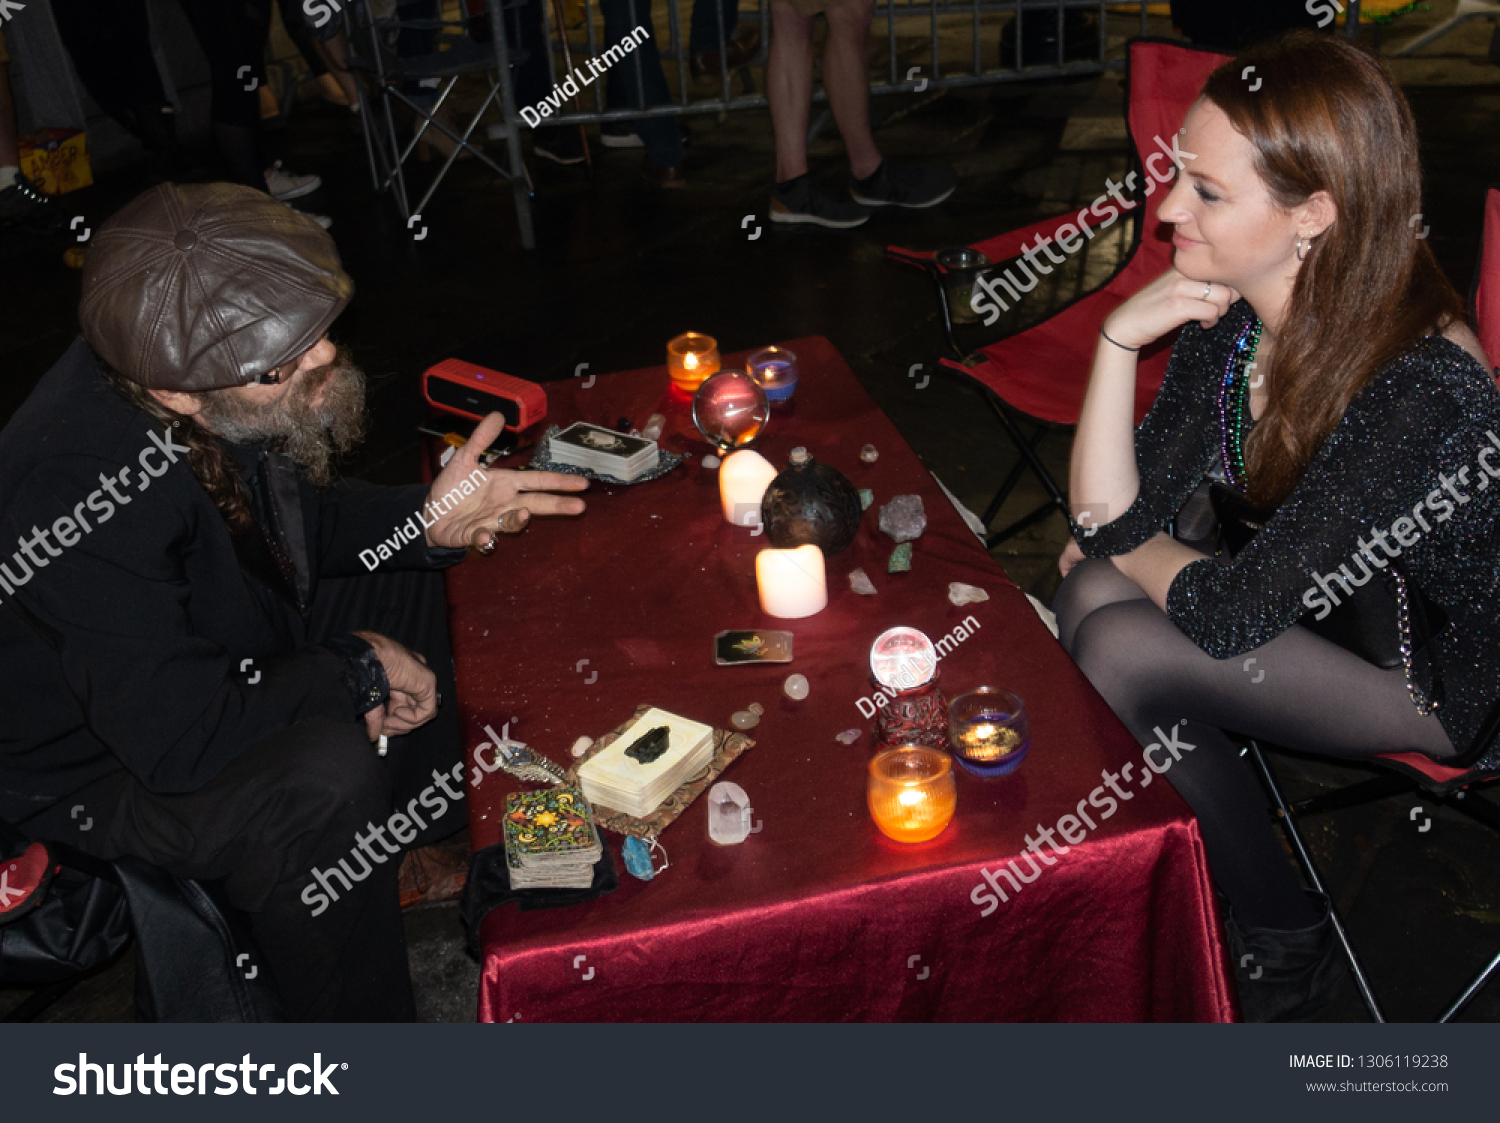 New Orleans, Louisiana - December 31, 2018: A woman gets a psychic tarot card reading from a man with crystal ball, candles, at Jackson Square on new year's eve in the French Quarter of New Orleans.